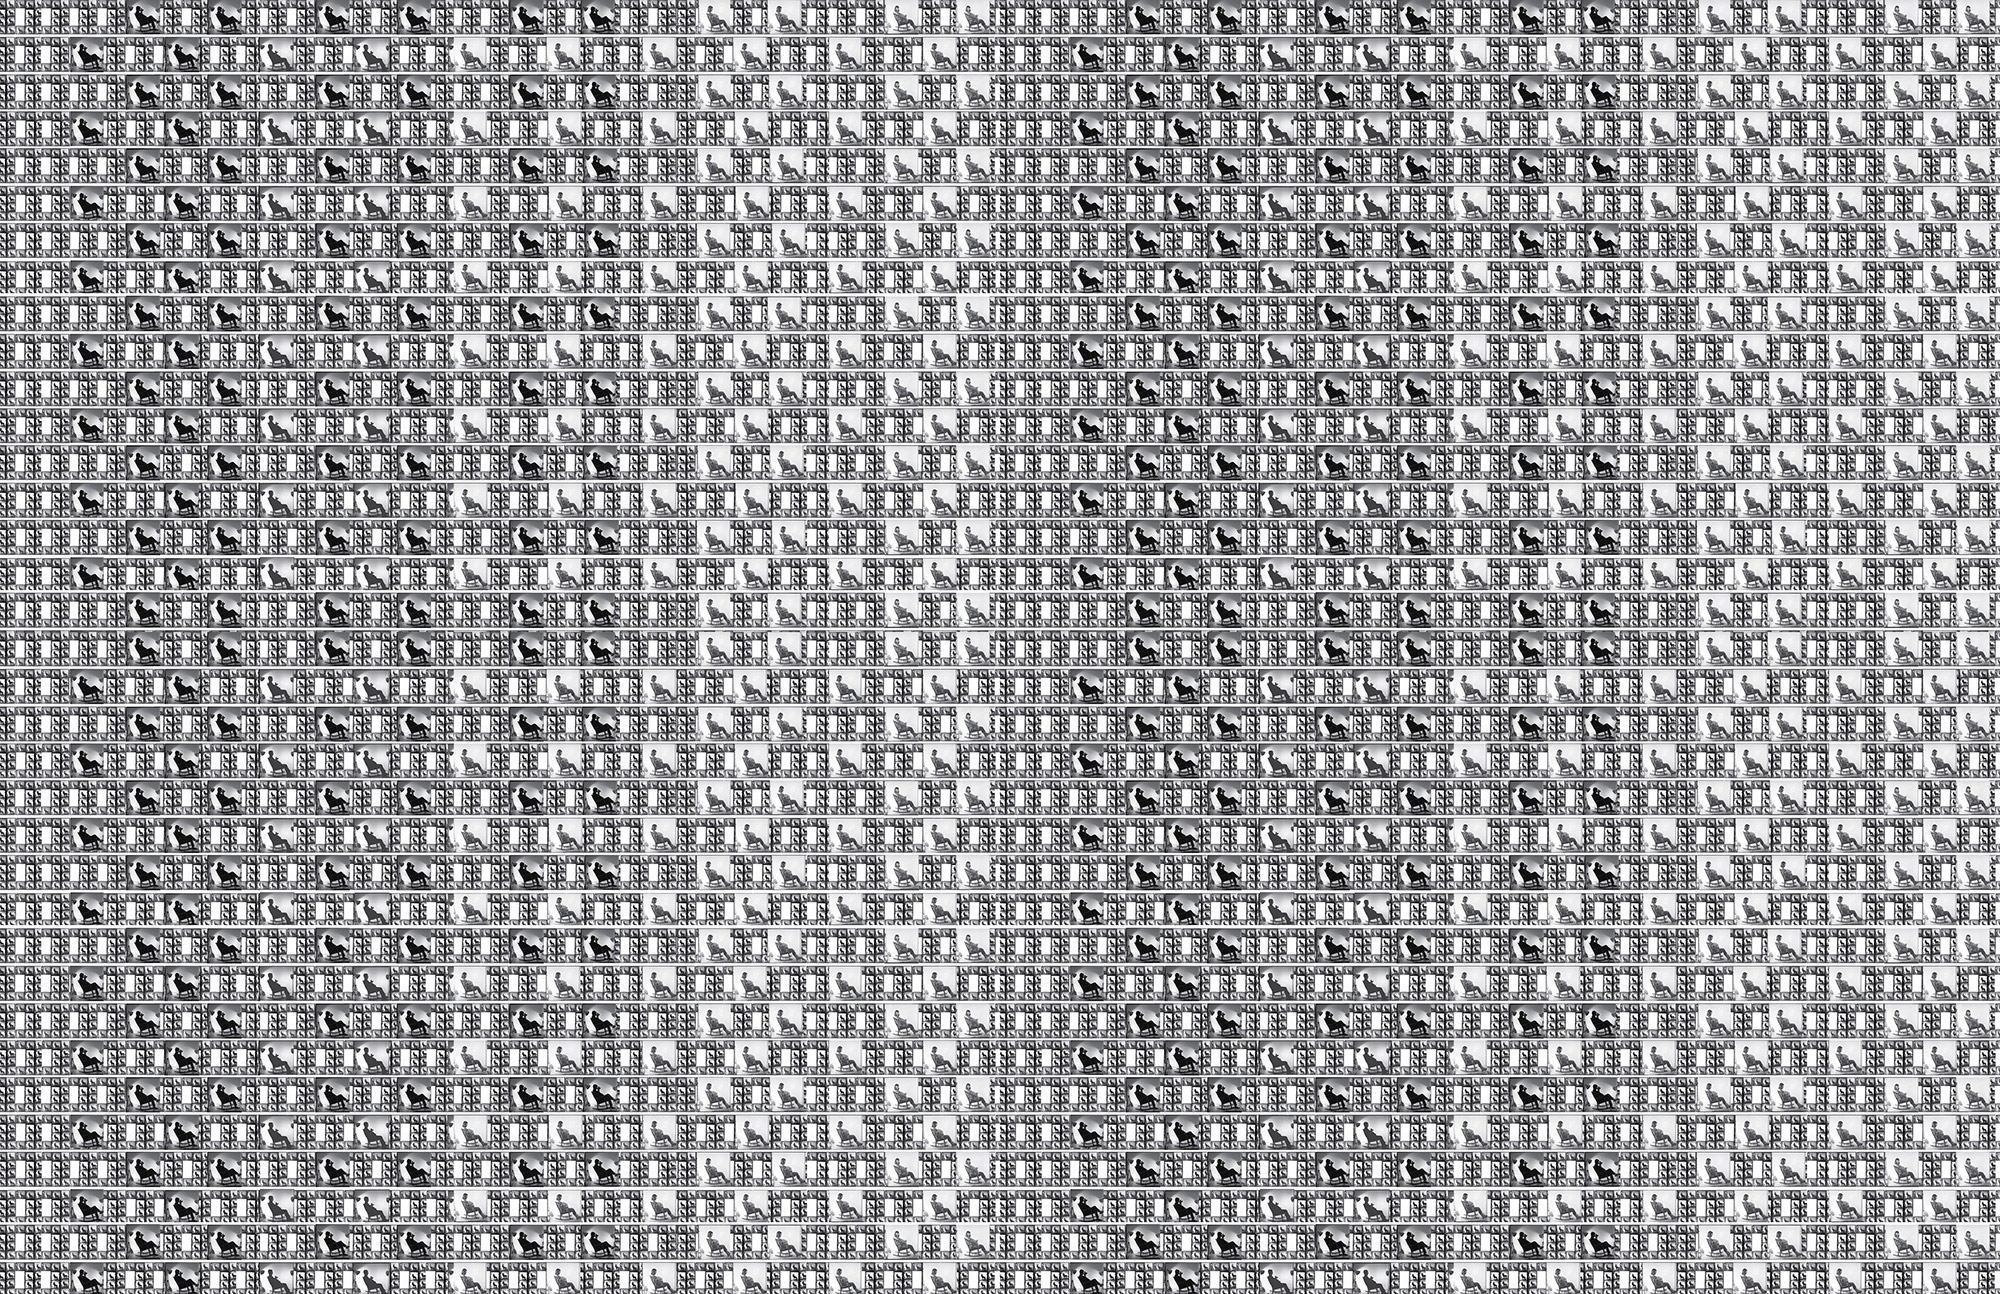 Echoes_Muybridge_Whistler_Pattern